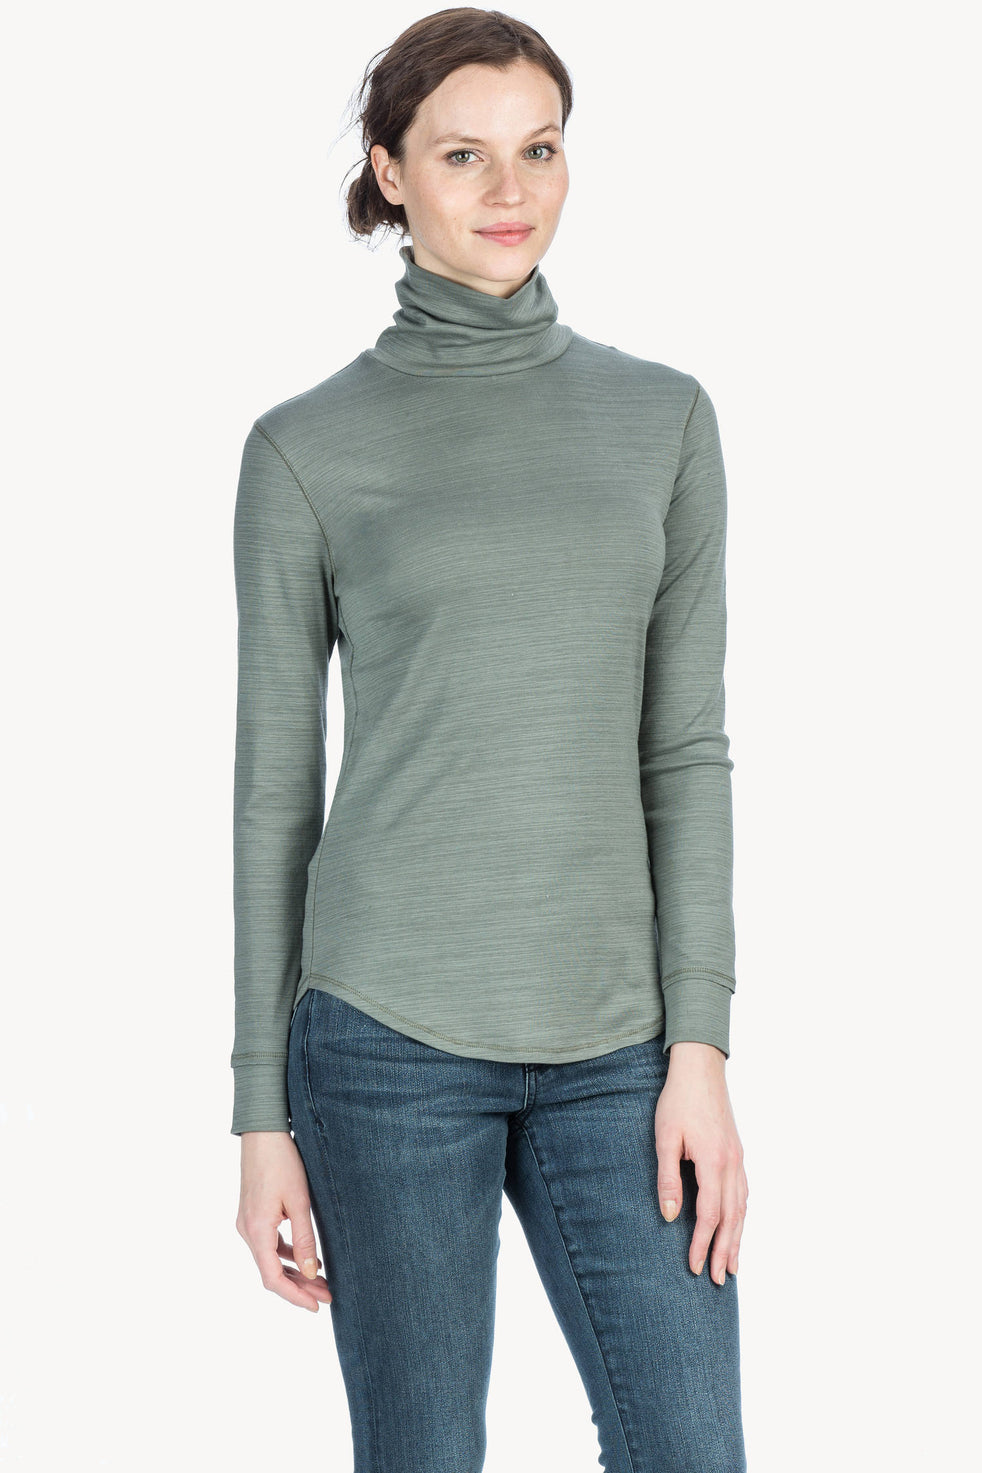 70b170ec7dd Long Sleeve Turtleneck Womens Top Castor A1 ...